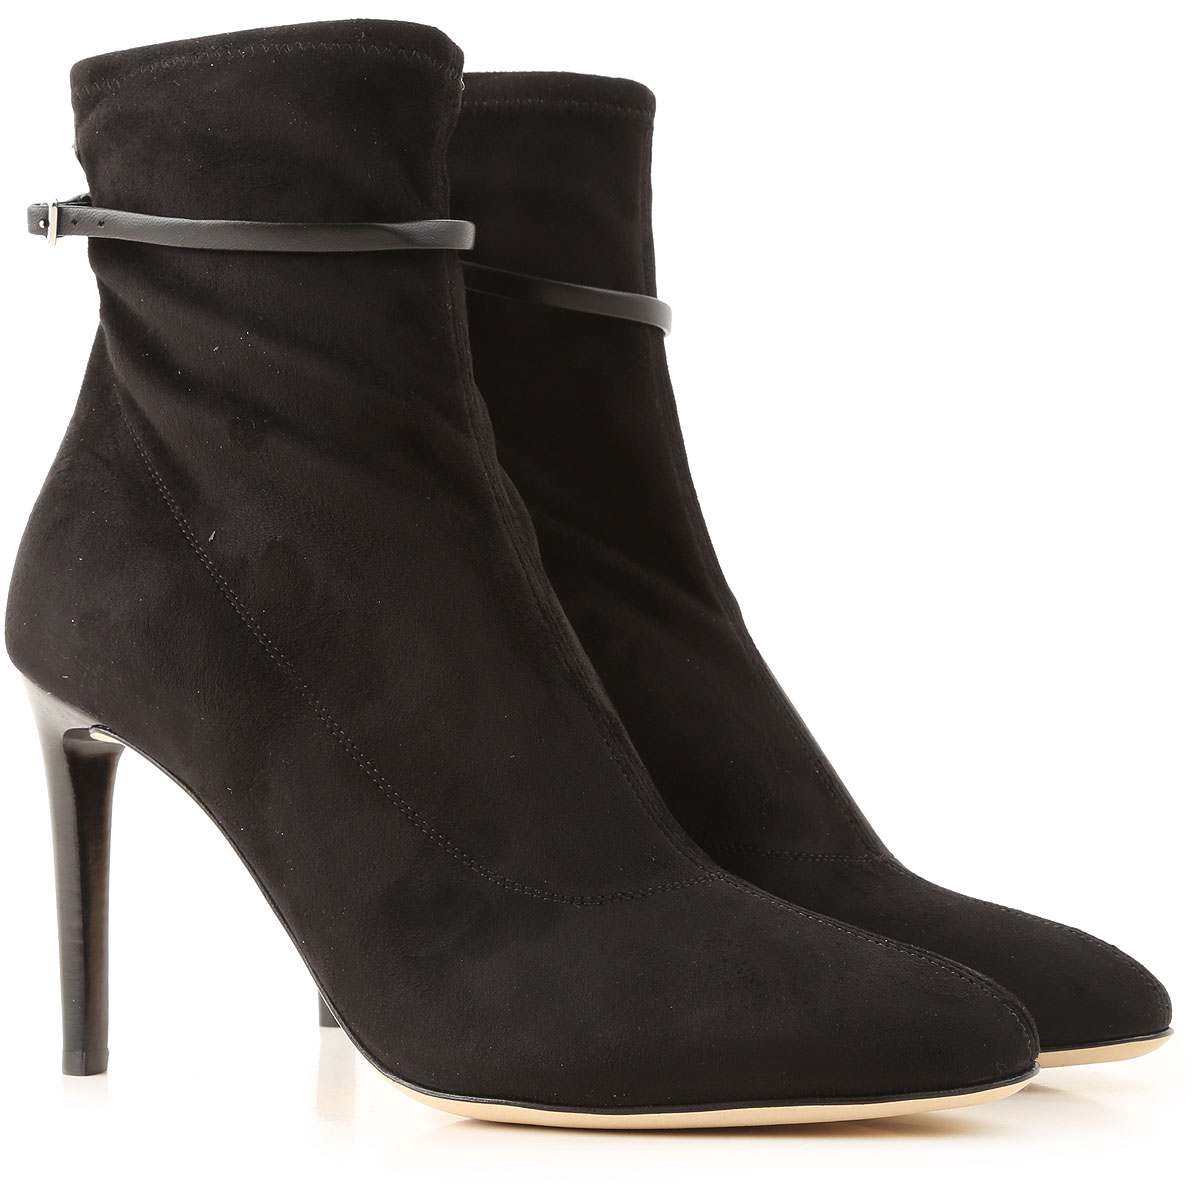 Giuseppe Zanotti Design Boots for Women, Booties On Sale in Outlet, Black, Suede leather, 2019, 8 9